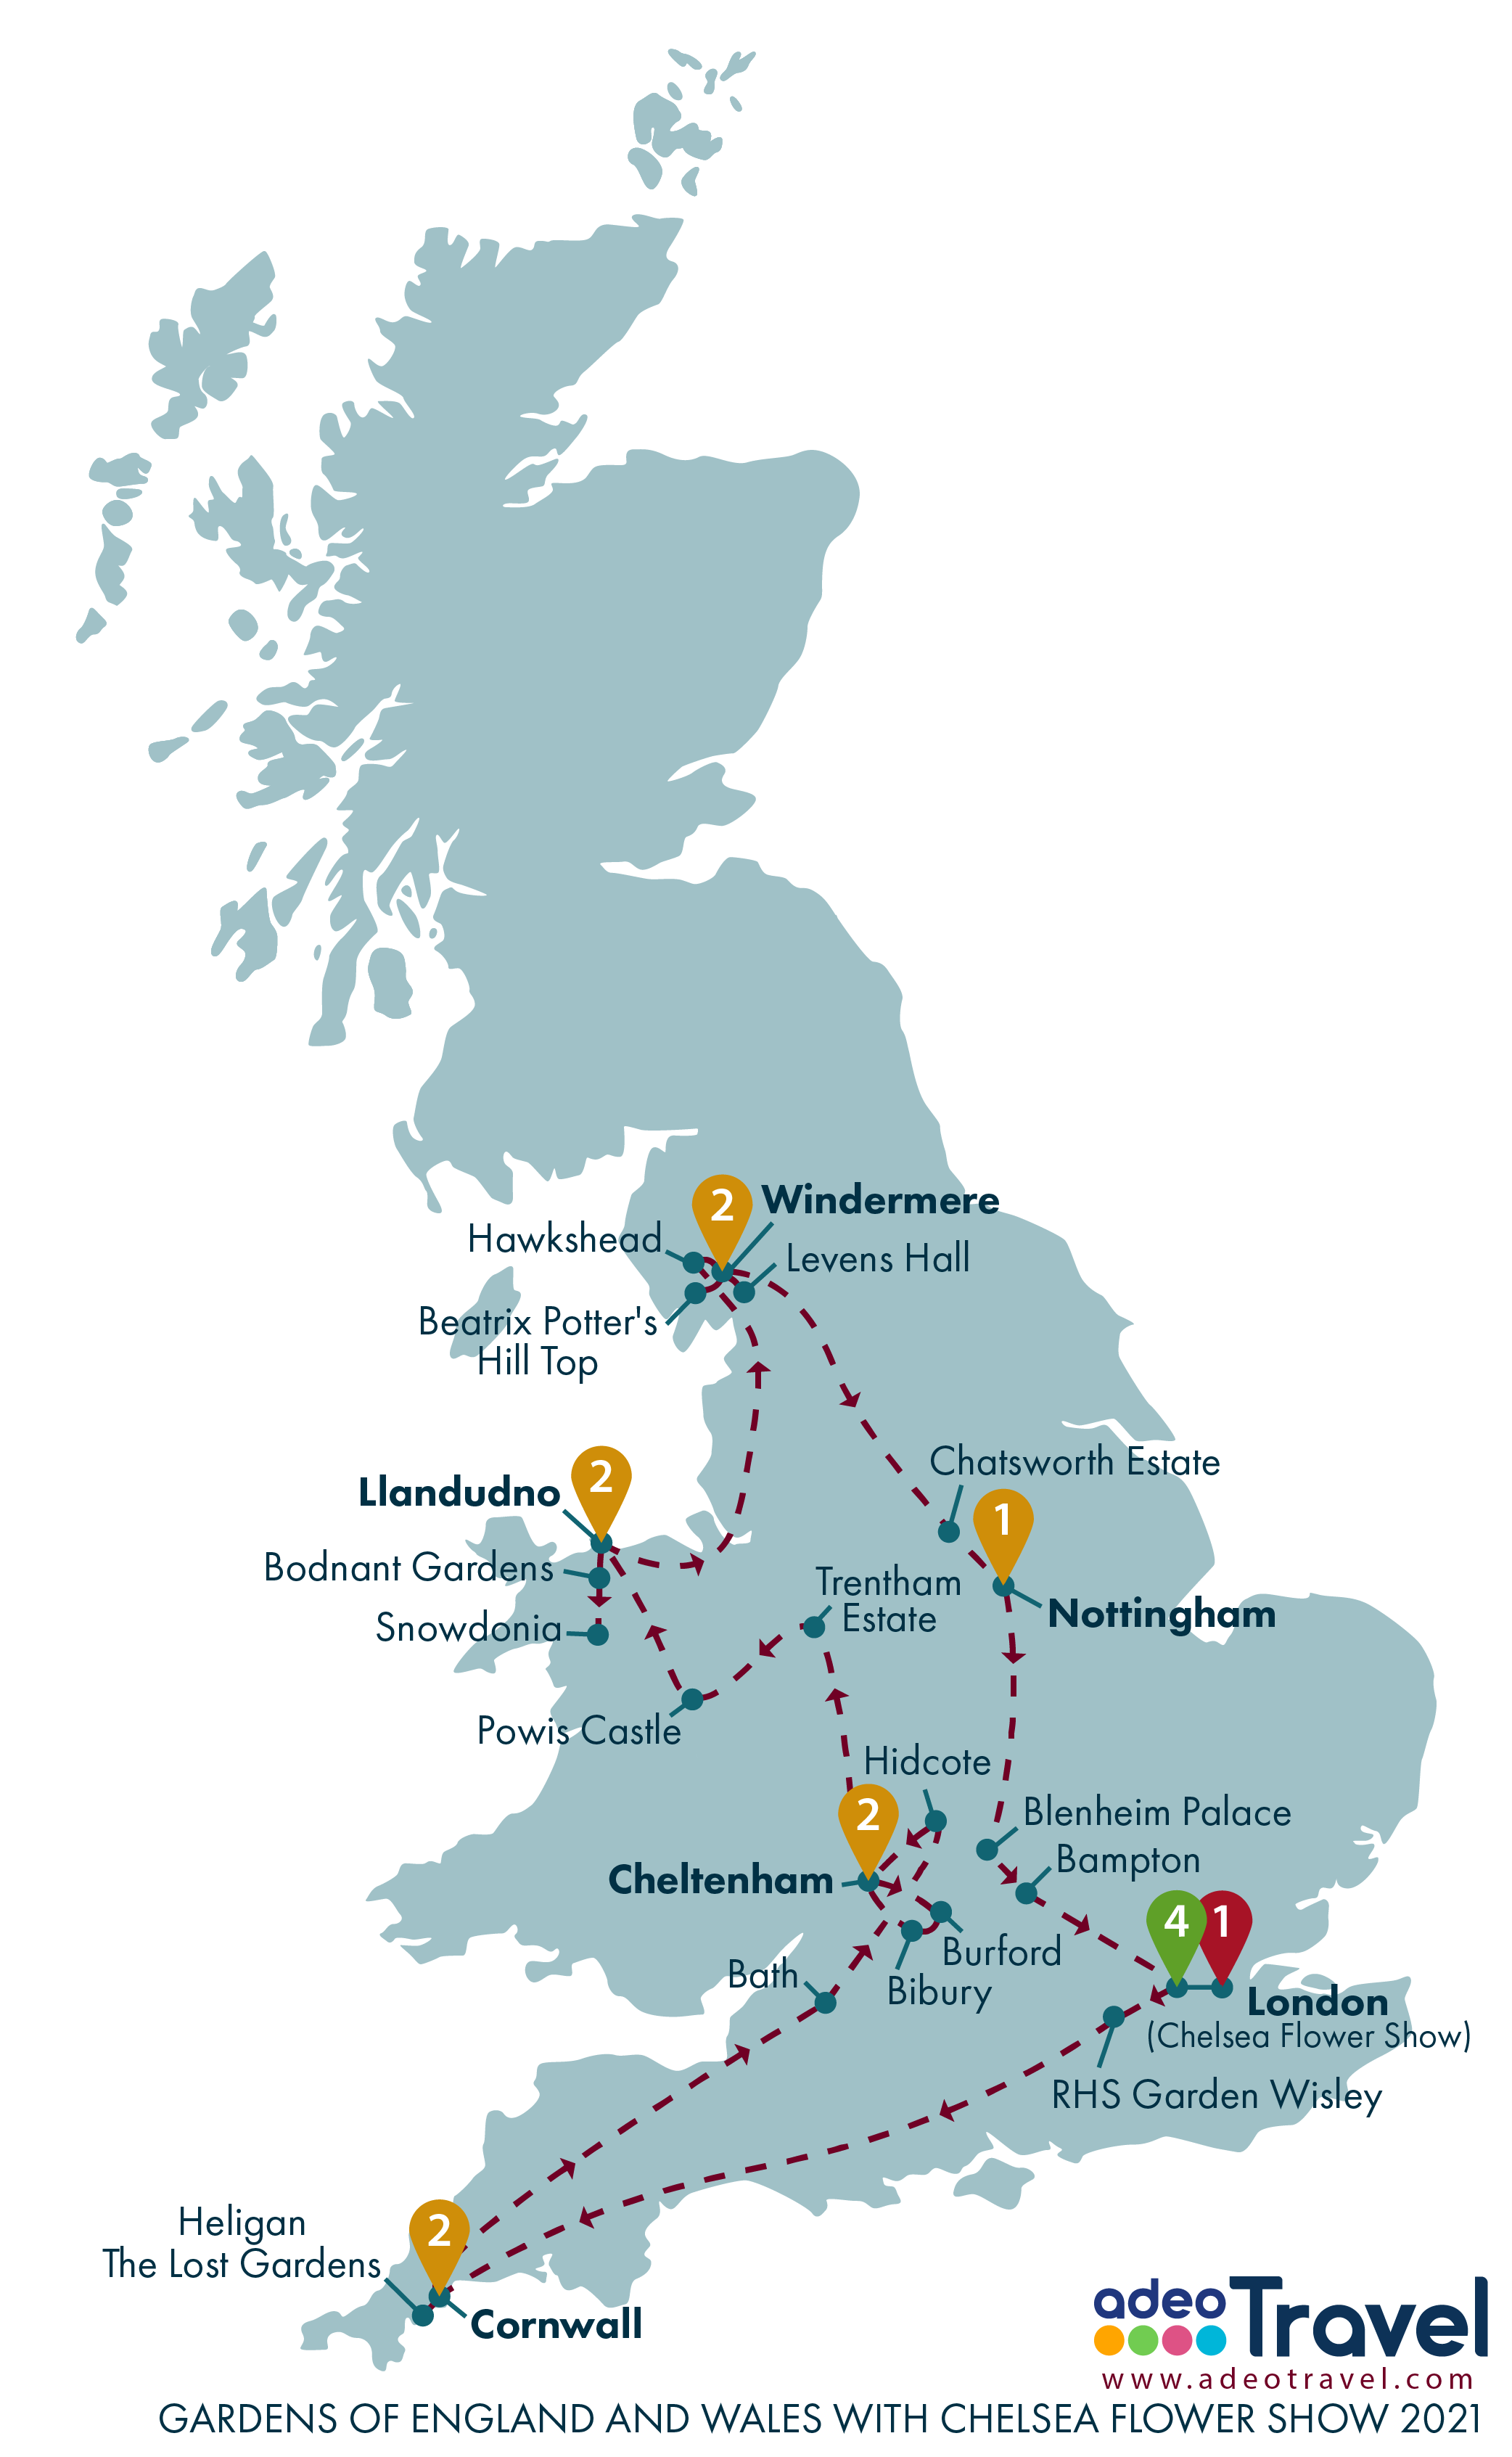 Map - Gardens of England and Wales with Chelsea Flower Show 2021